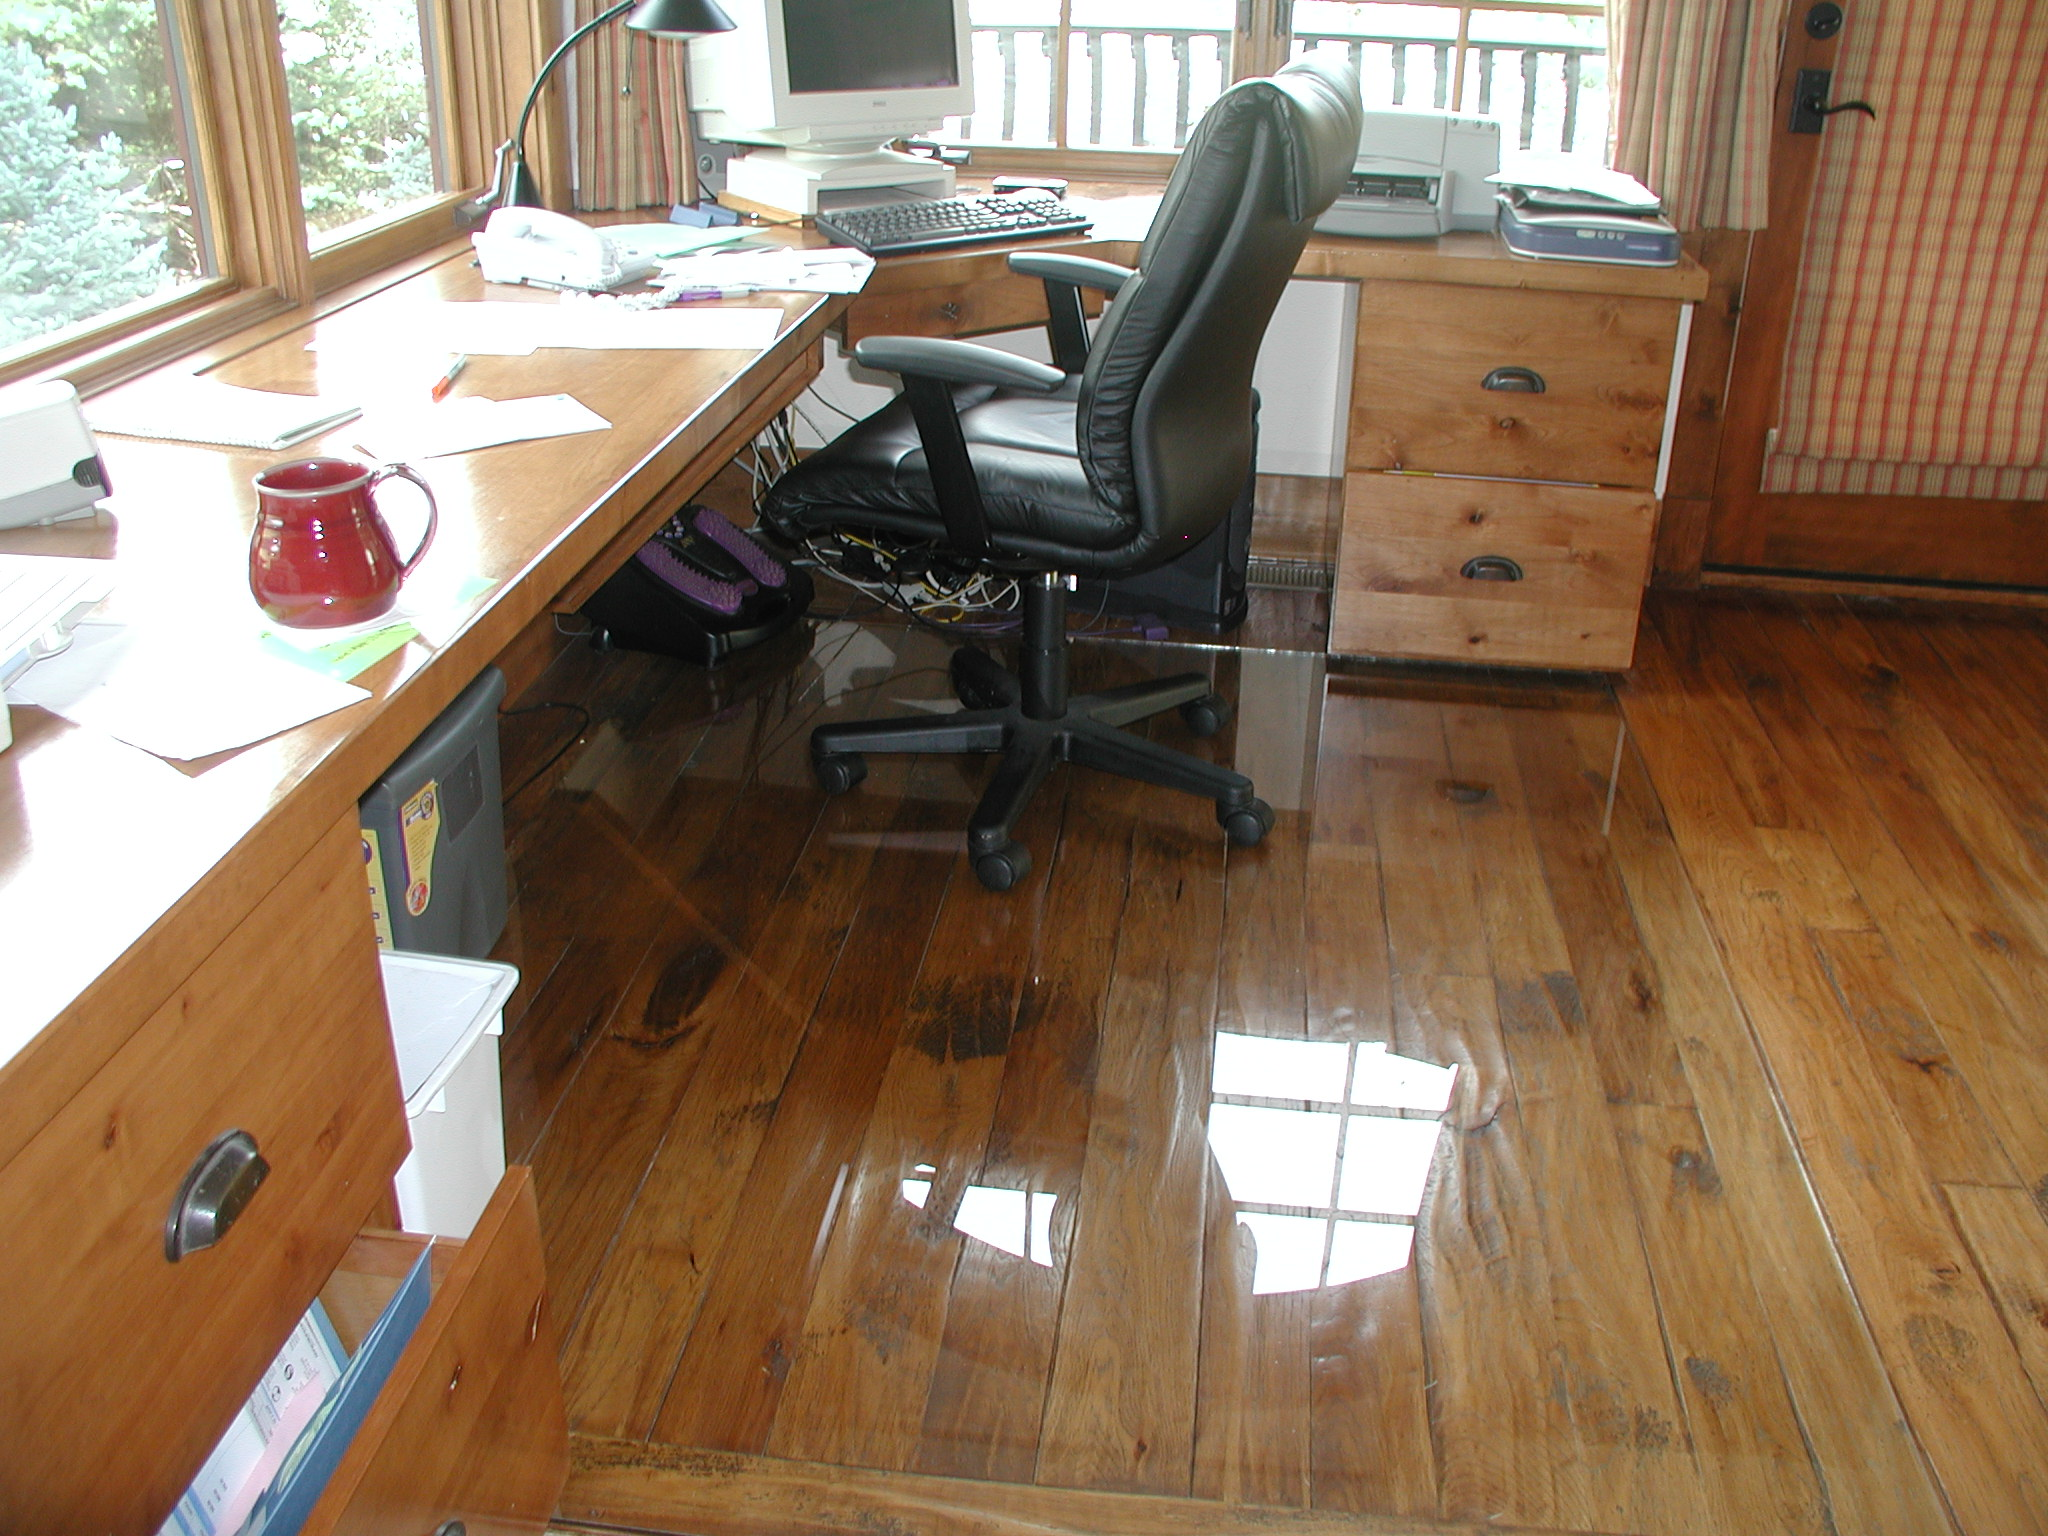 Transparent Floor Mats for Wooden floors